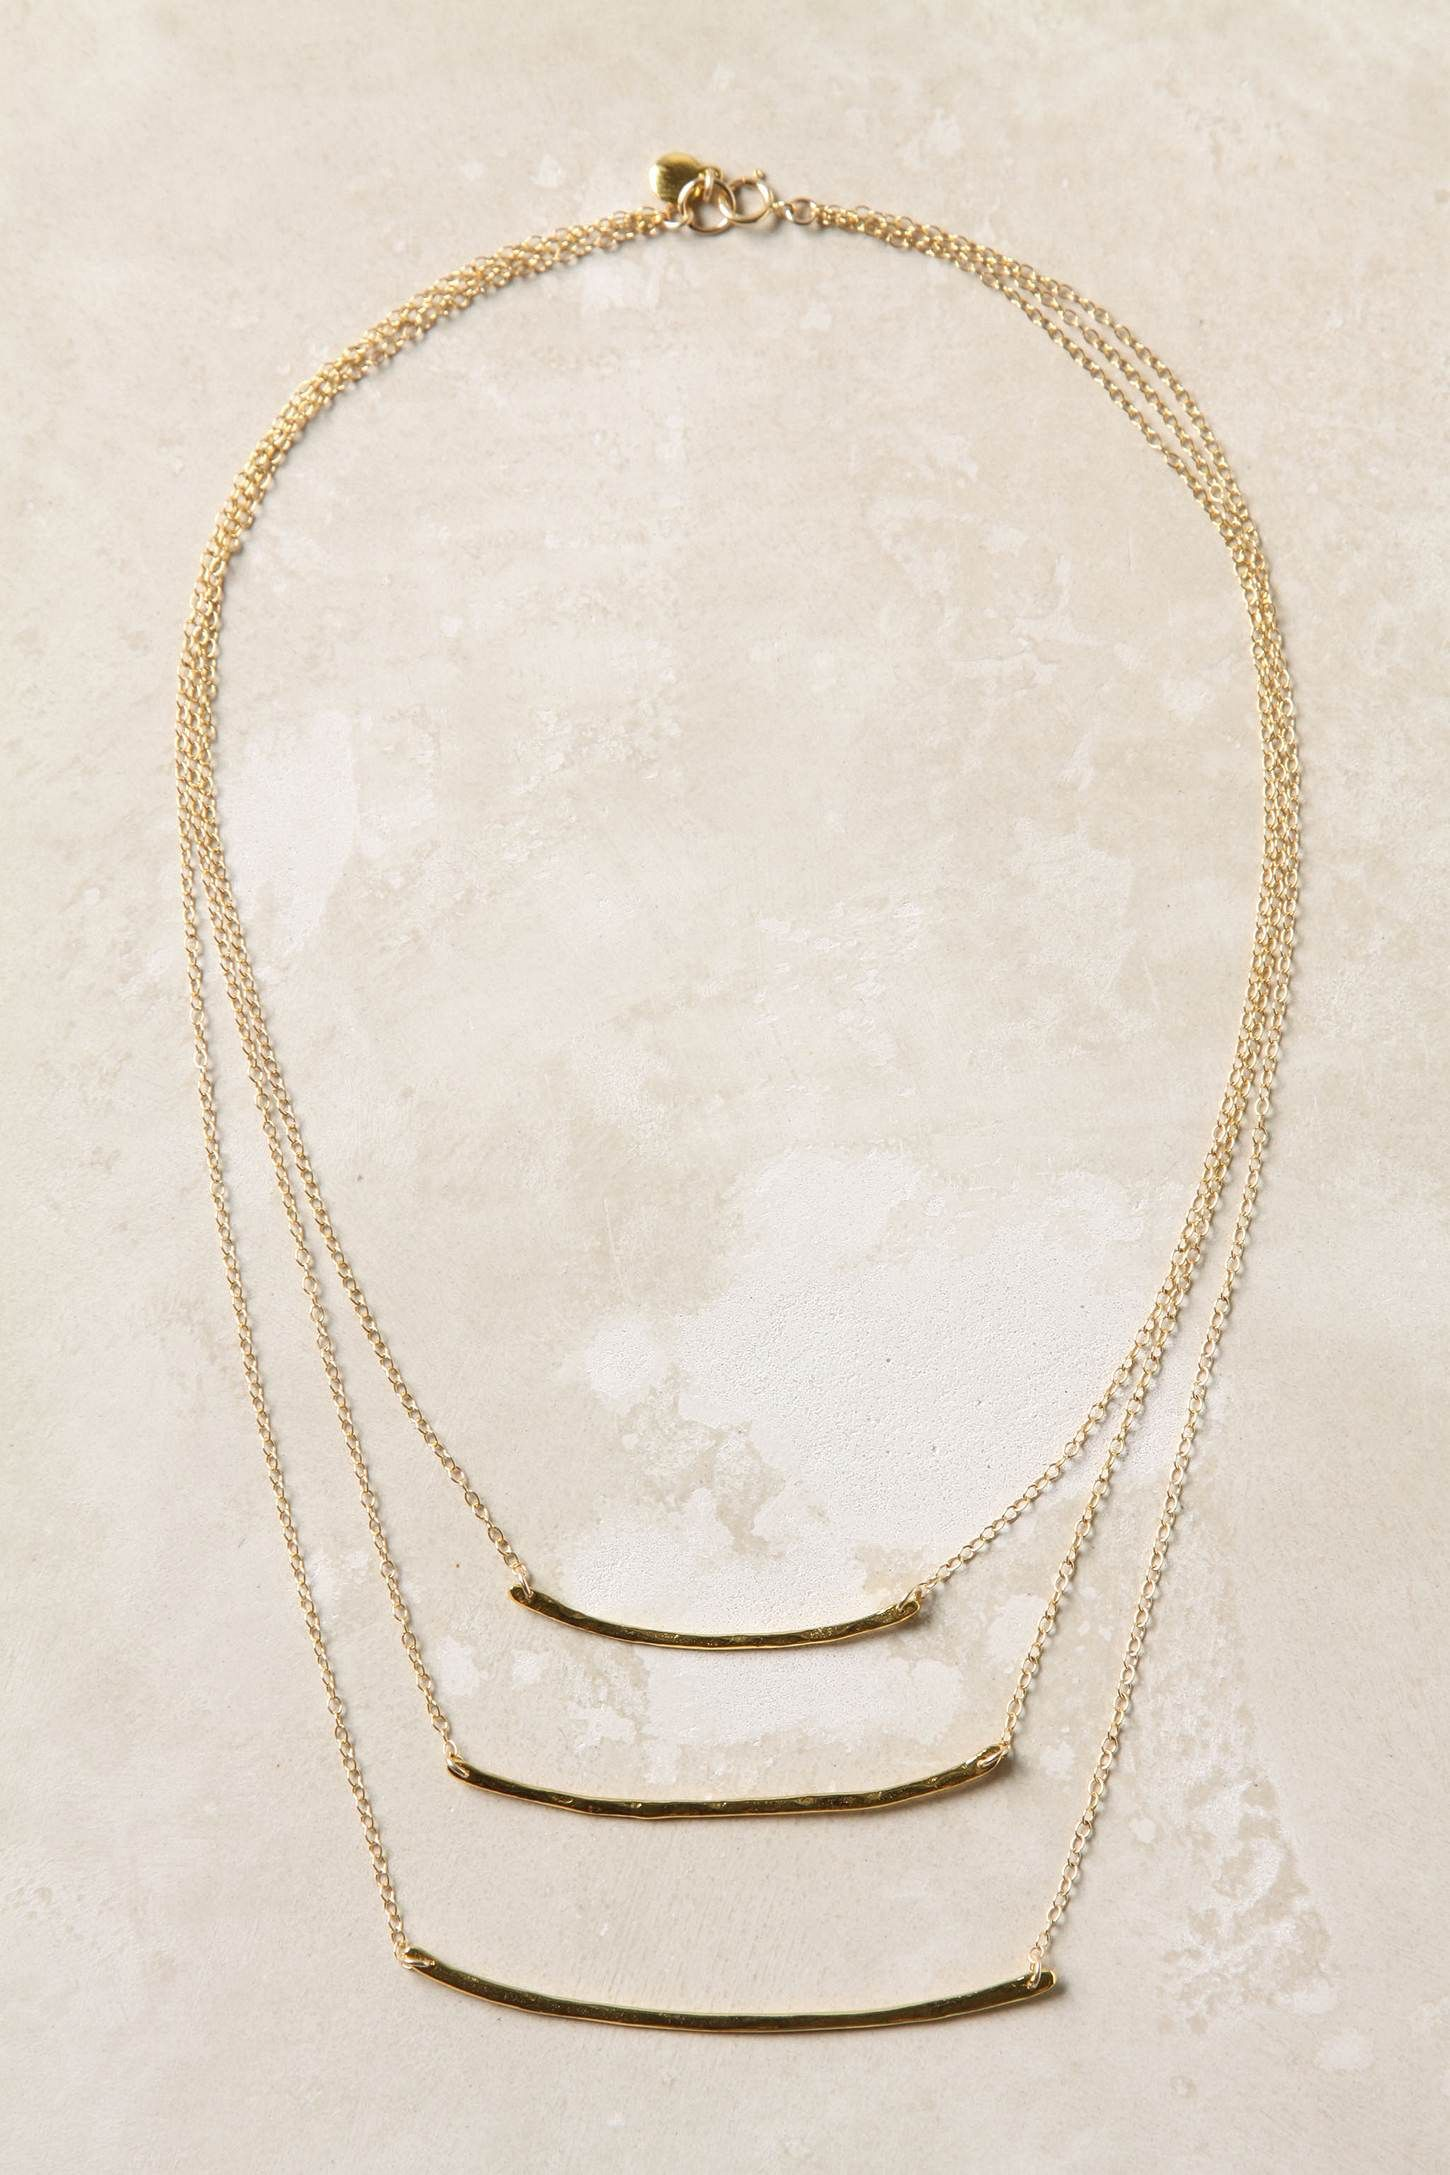 gallery lauren jewelry statement simple normal necklace ralph in by bib goldwhite metallic lyst product gold